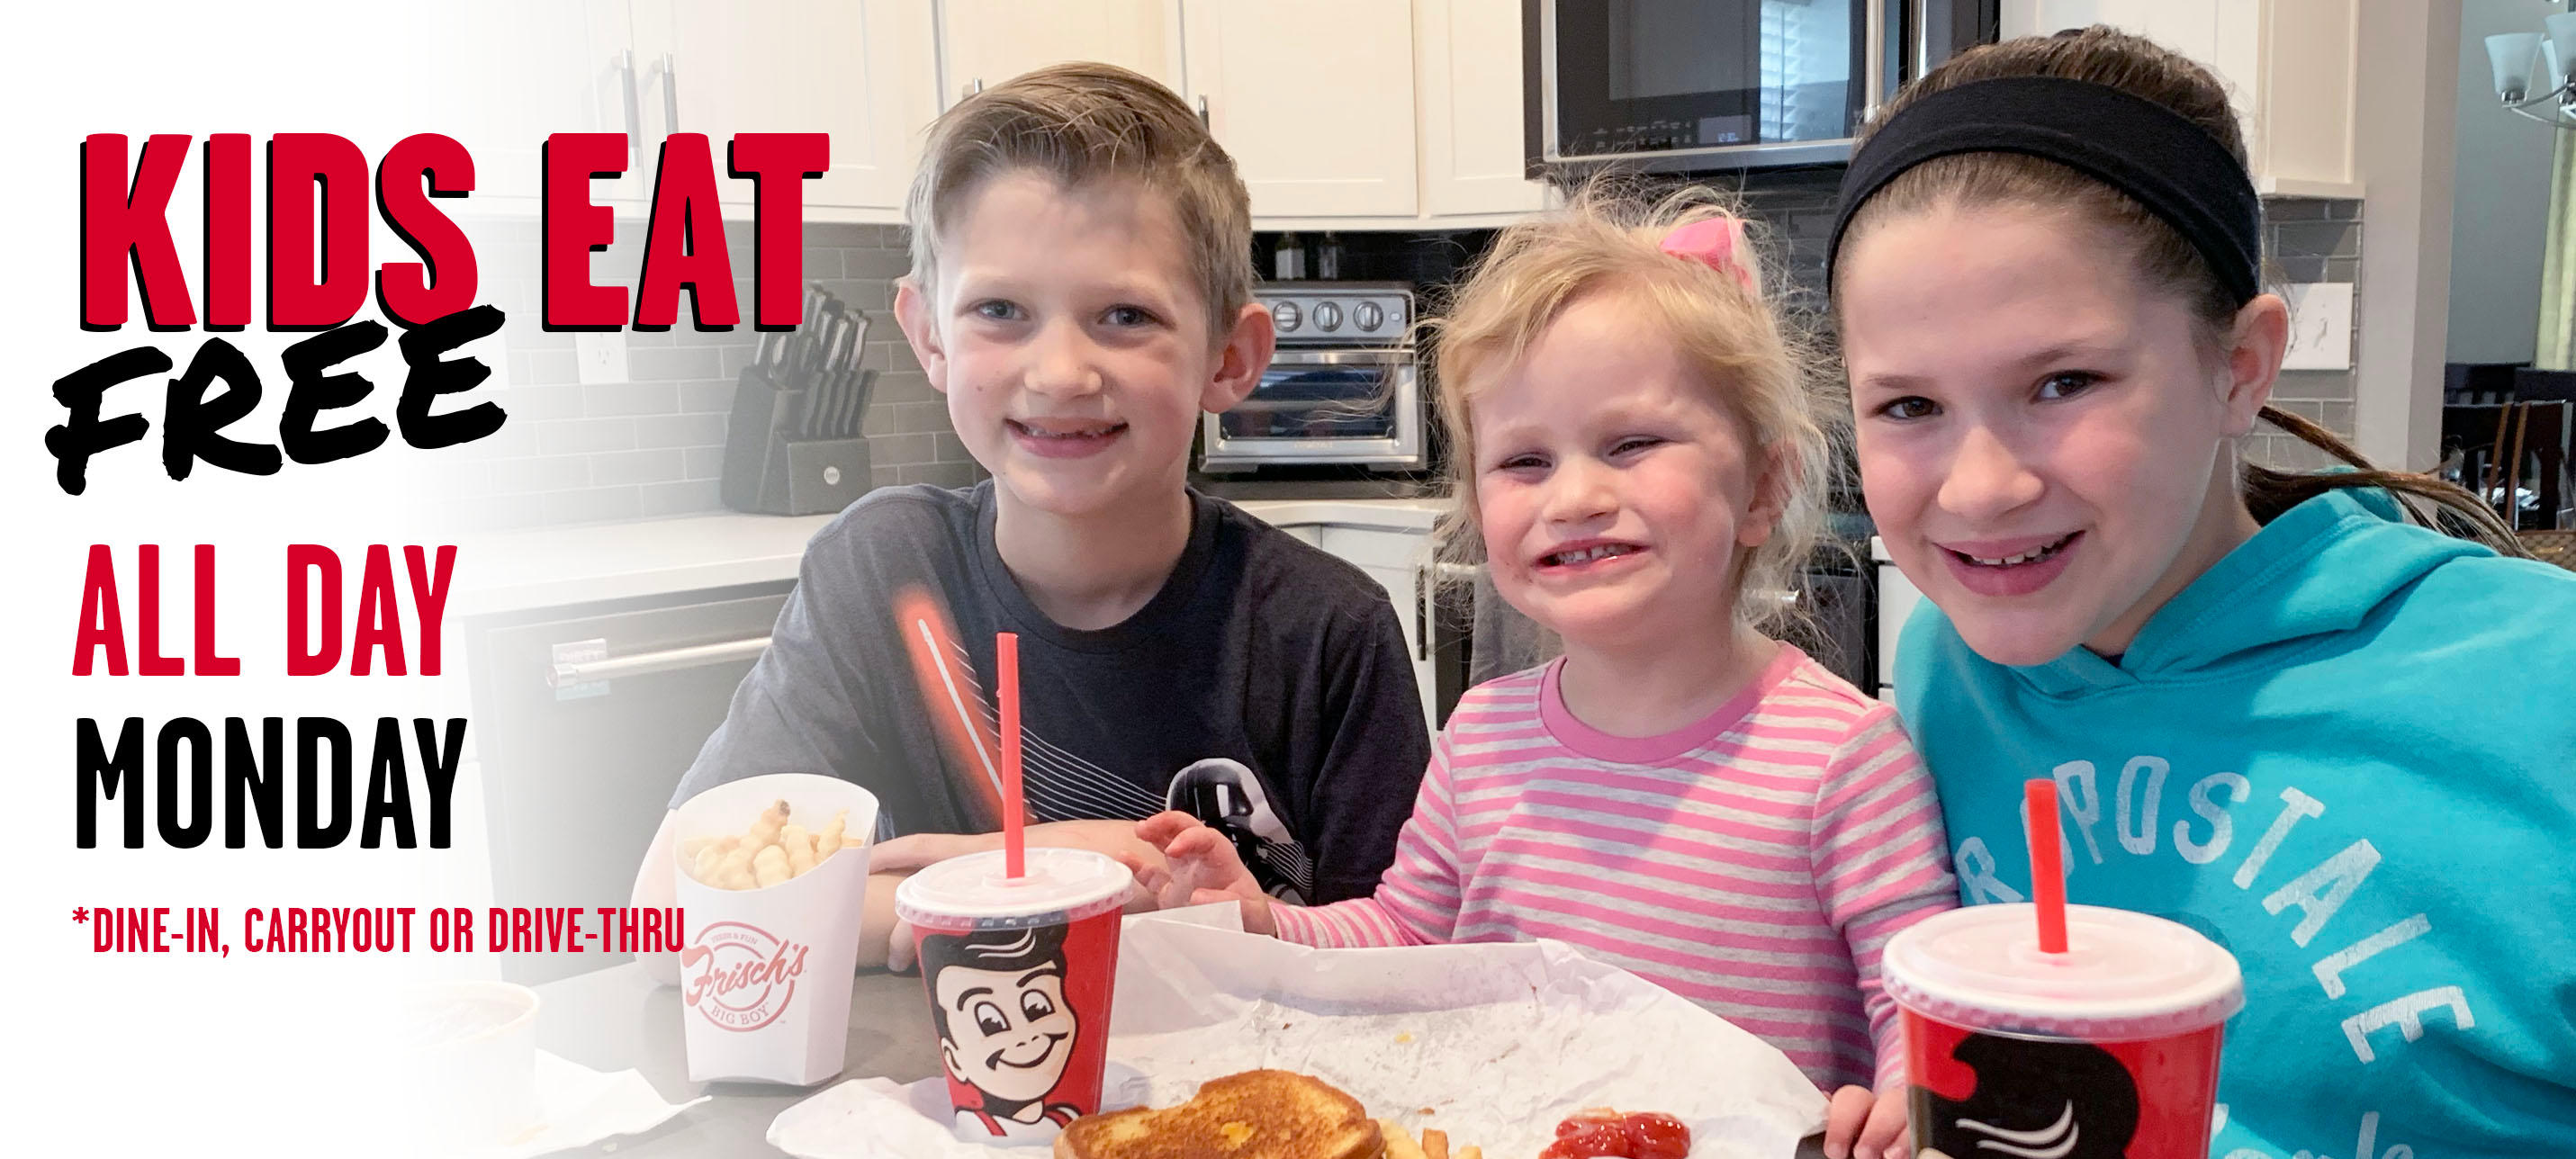 Save a little cash by taking your little ones to Frisch's Big Boy!  Every Monday, enjoy one free Kids Mini Meal (for children 12 and under) per  adult purchase of $6.98 or more.  This is a dine-in, drive-thru and carryout special only for a limited time, so hurry over to your favorite Frisch's Big Boy!  Available at participating locations. Offer may be for a limited time.